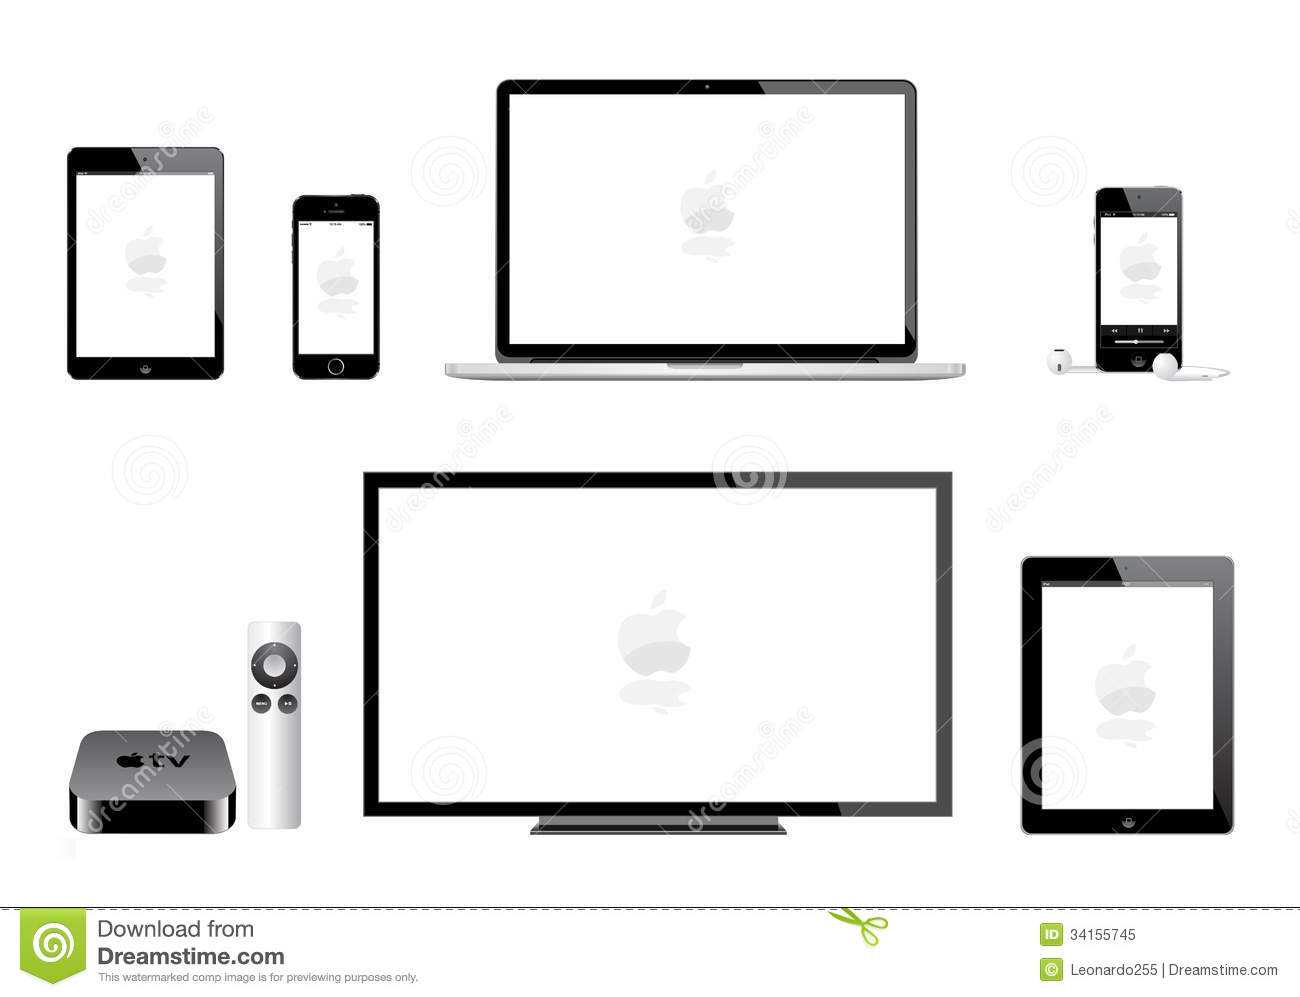 TV Van Iphone Ipod MAC Van Apple Ipad Mini Redactionele